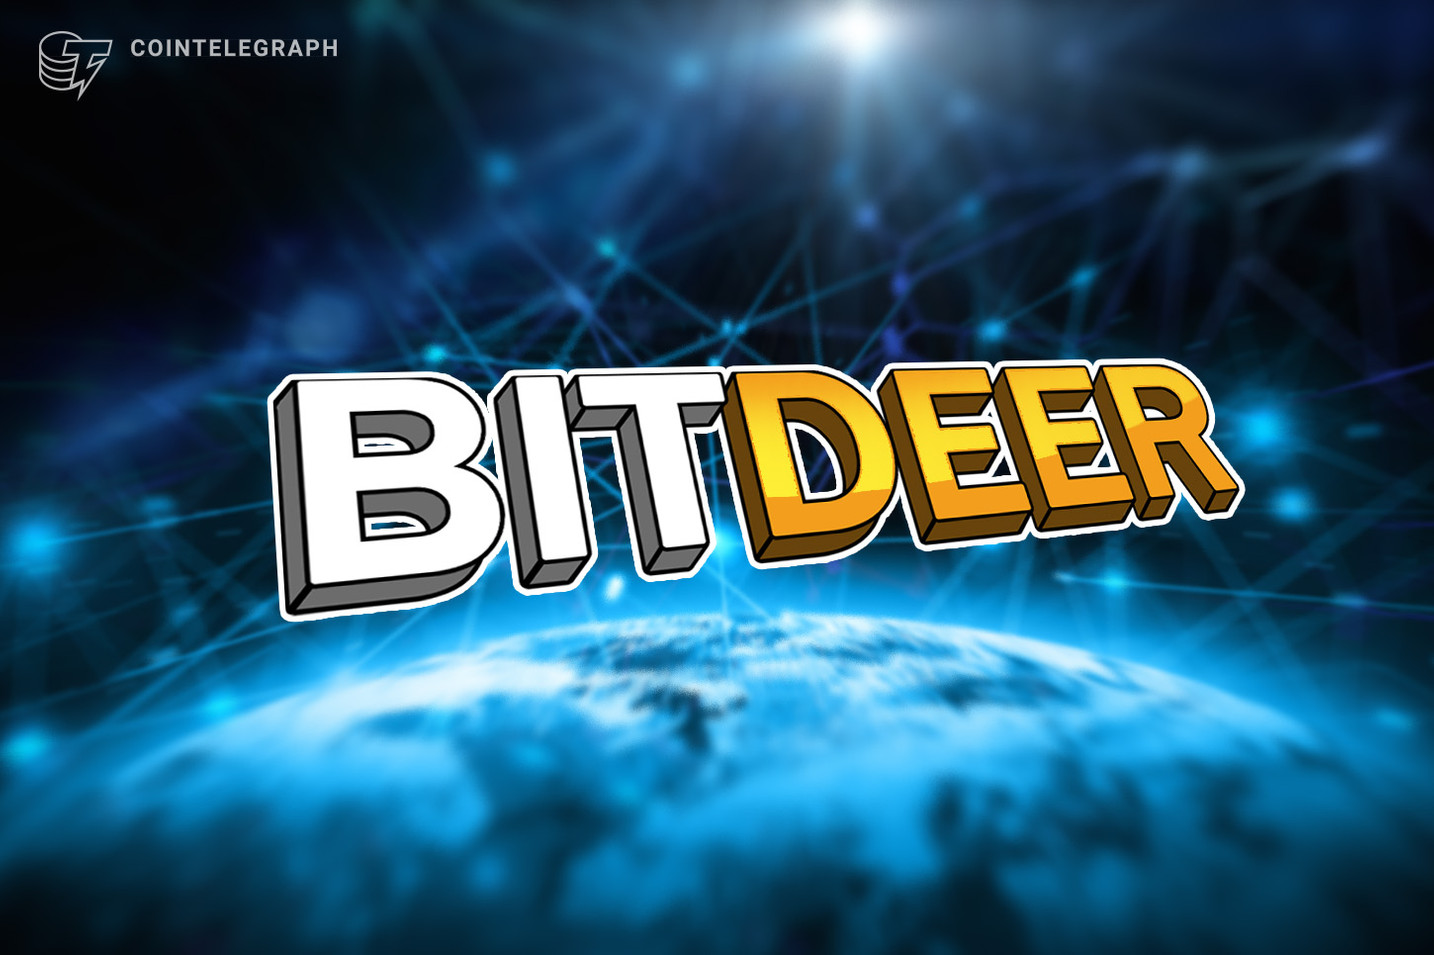 BitDeer.com Launch Achieves Explosive Growth of 1,350 Percent